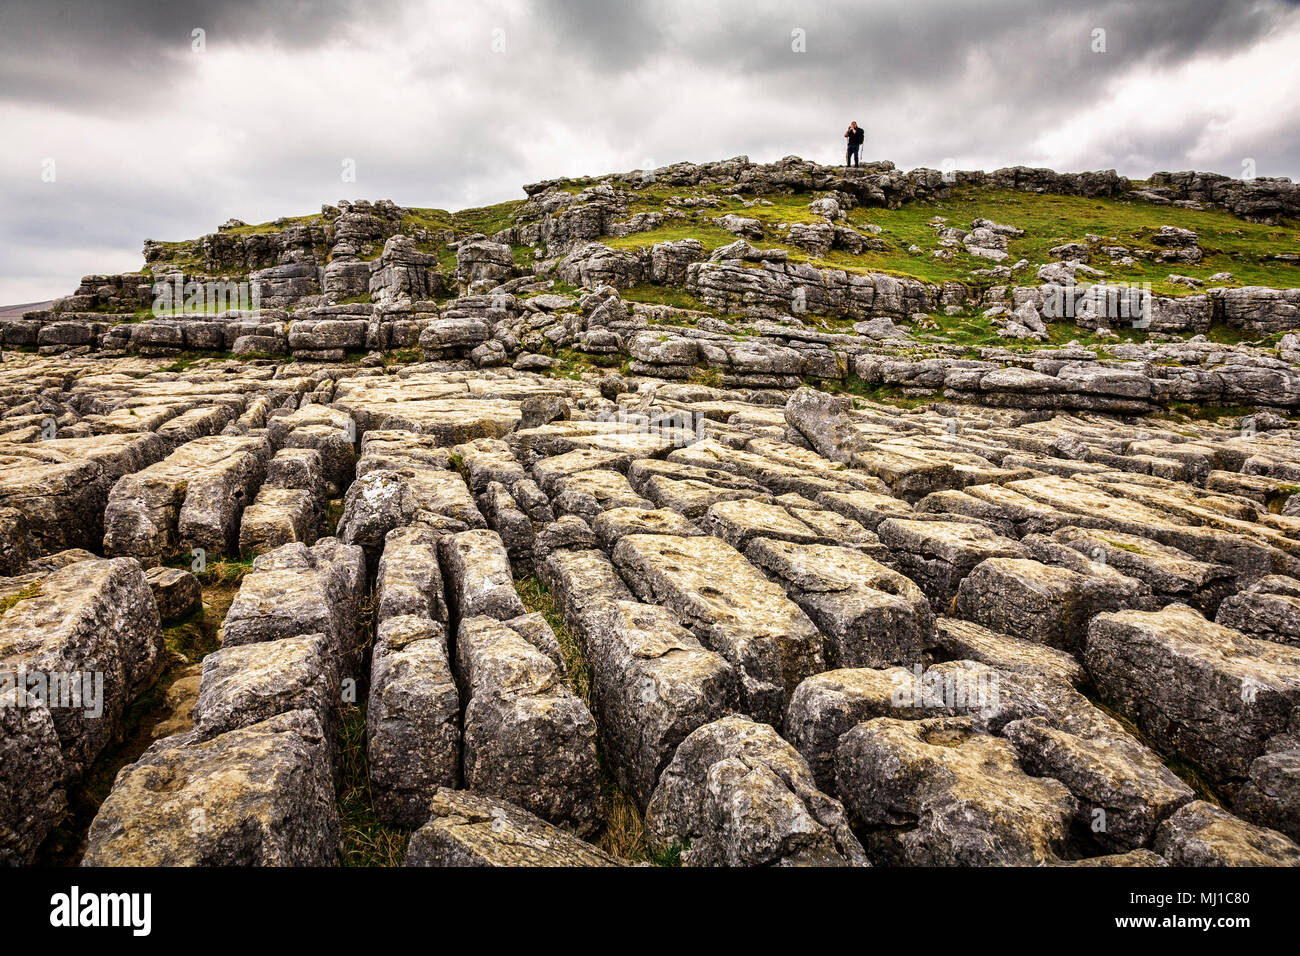 Limestone karst pavement at Malham Cove, Yorkshire Dales, England.Stock Photo